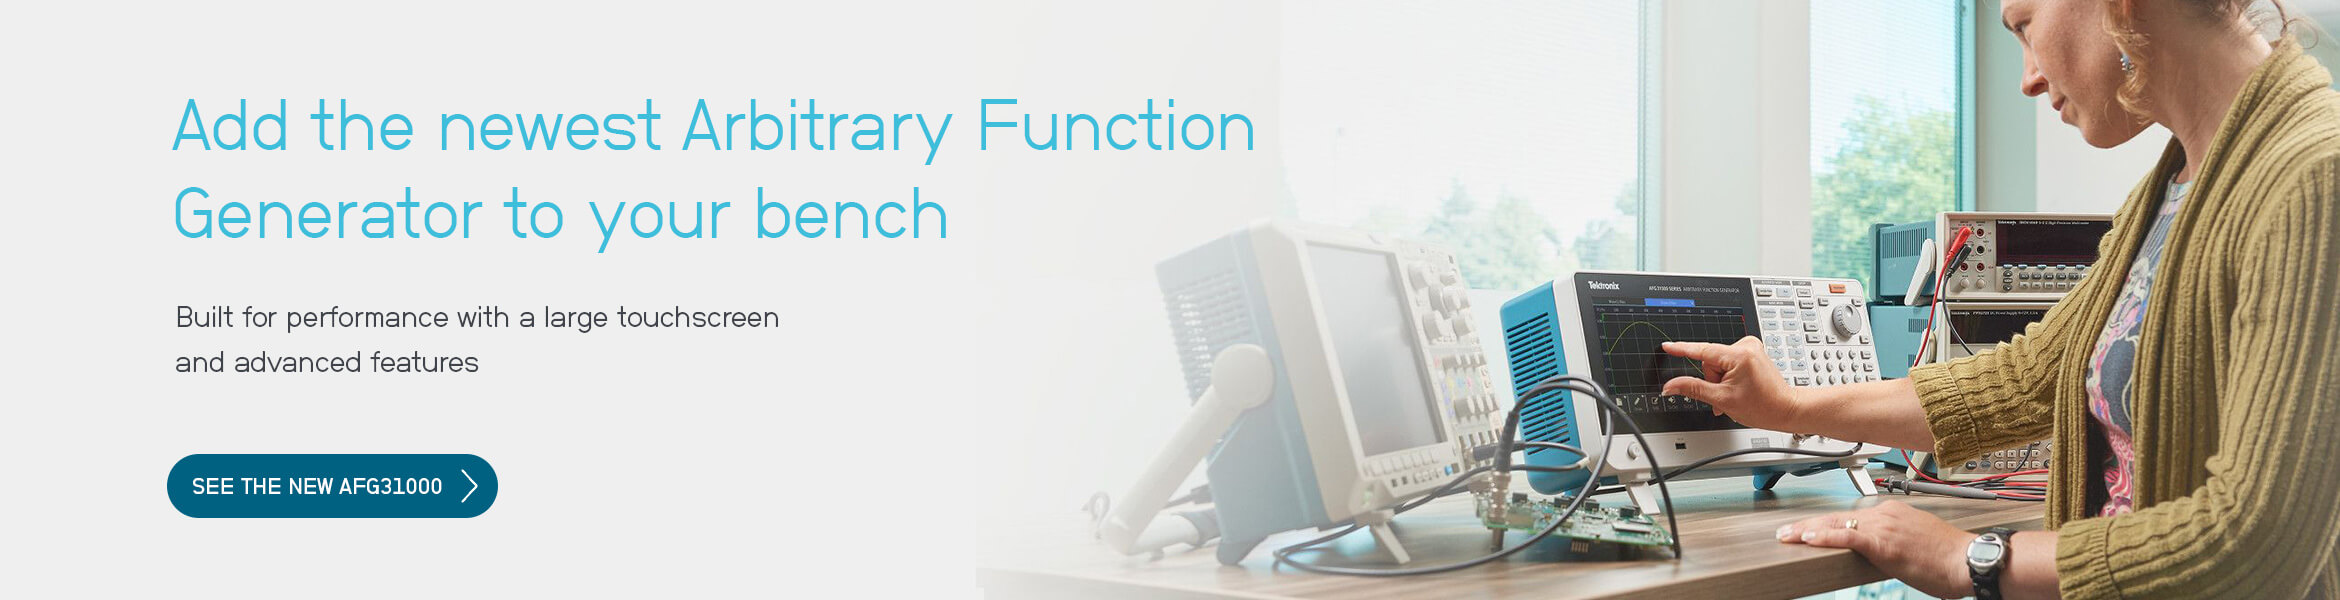 Add the newest arbitrary function generator to your bench